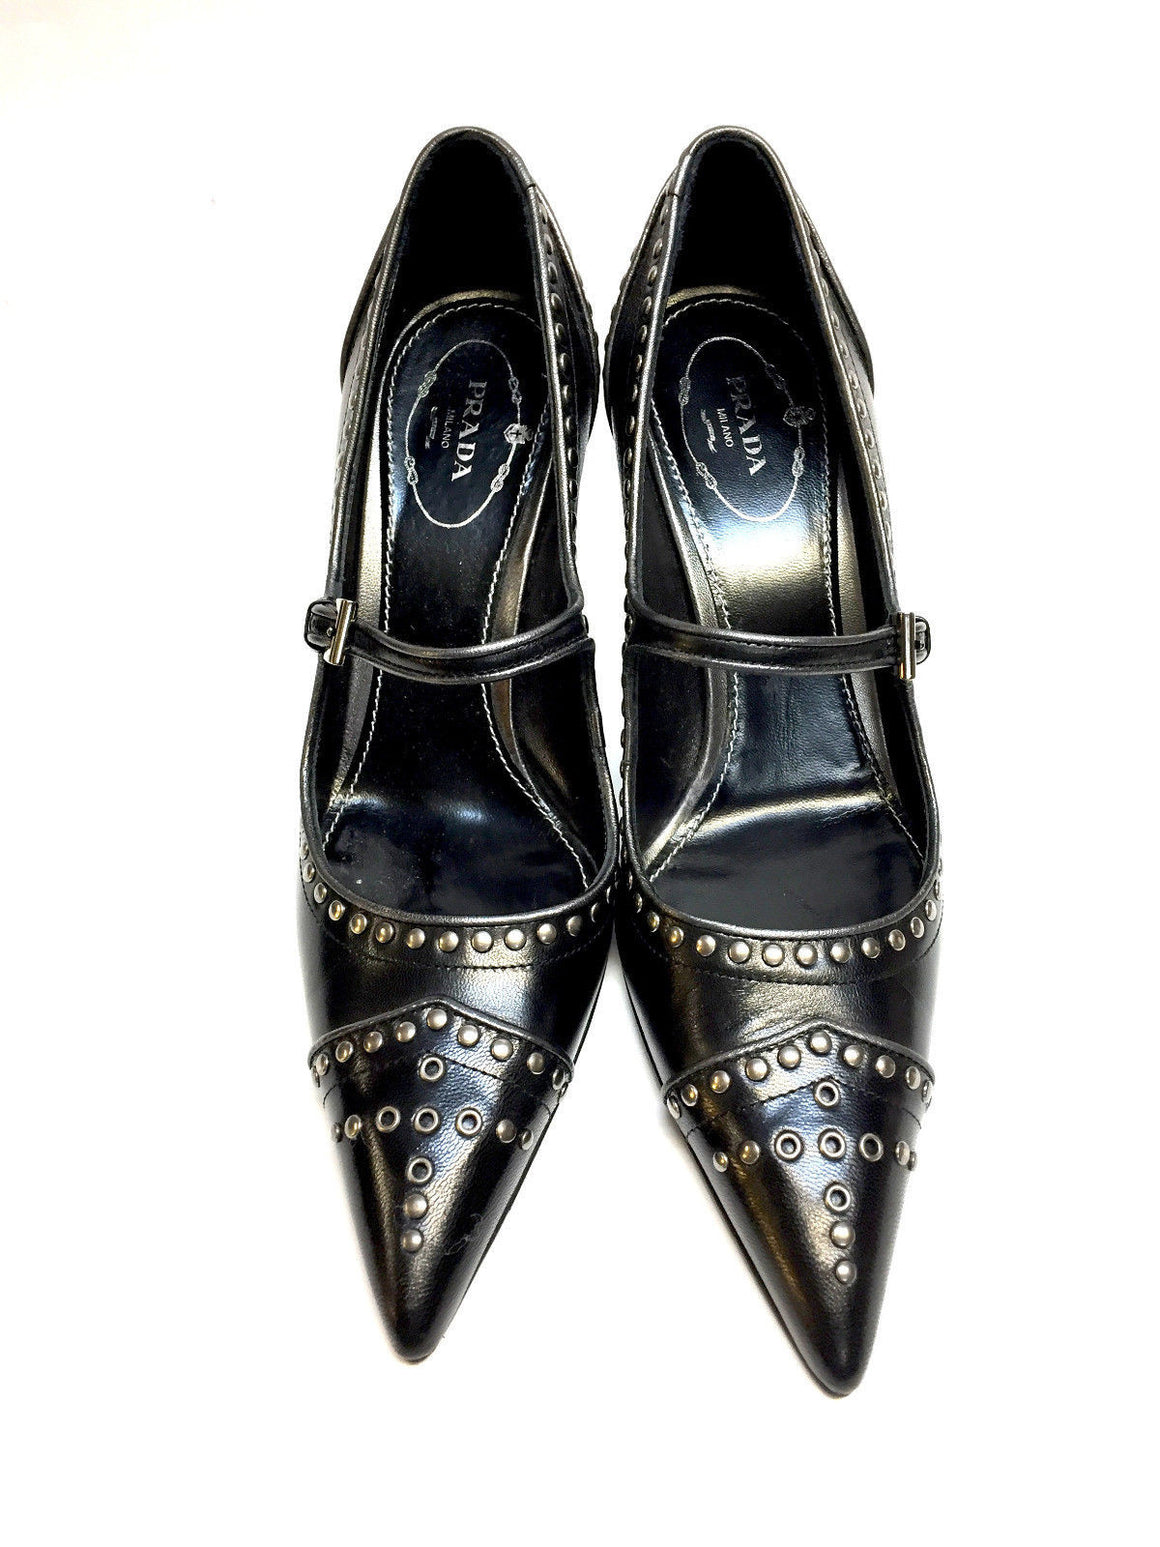 bisbiz.com PRADA Black Leather Gunmetal Studded Mary Jane Heel Pumps Shoes Size: 37.5 / 7.5 - Bis Luxury Resale